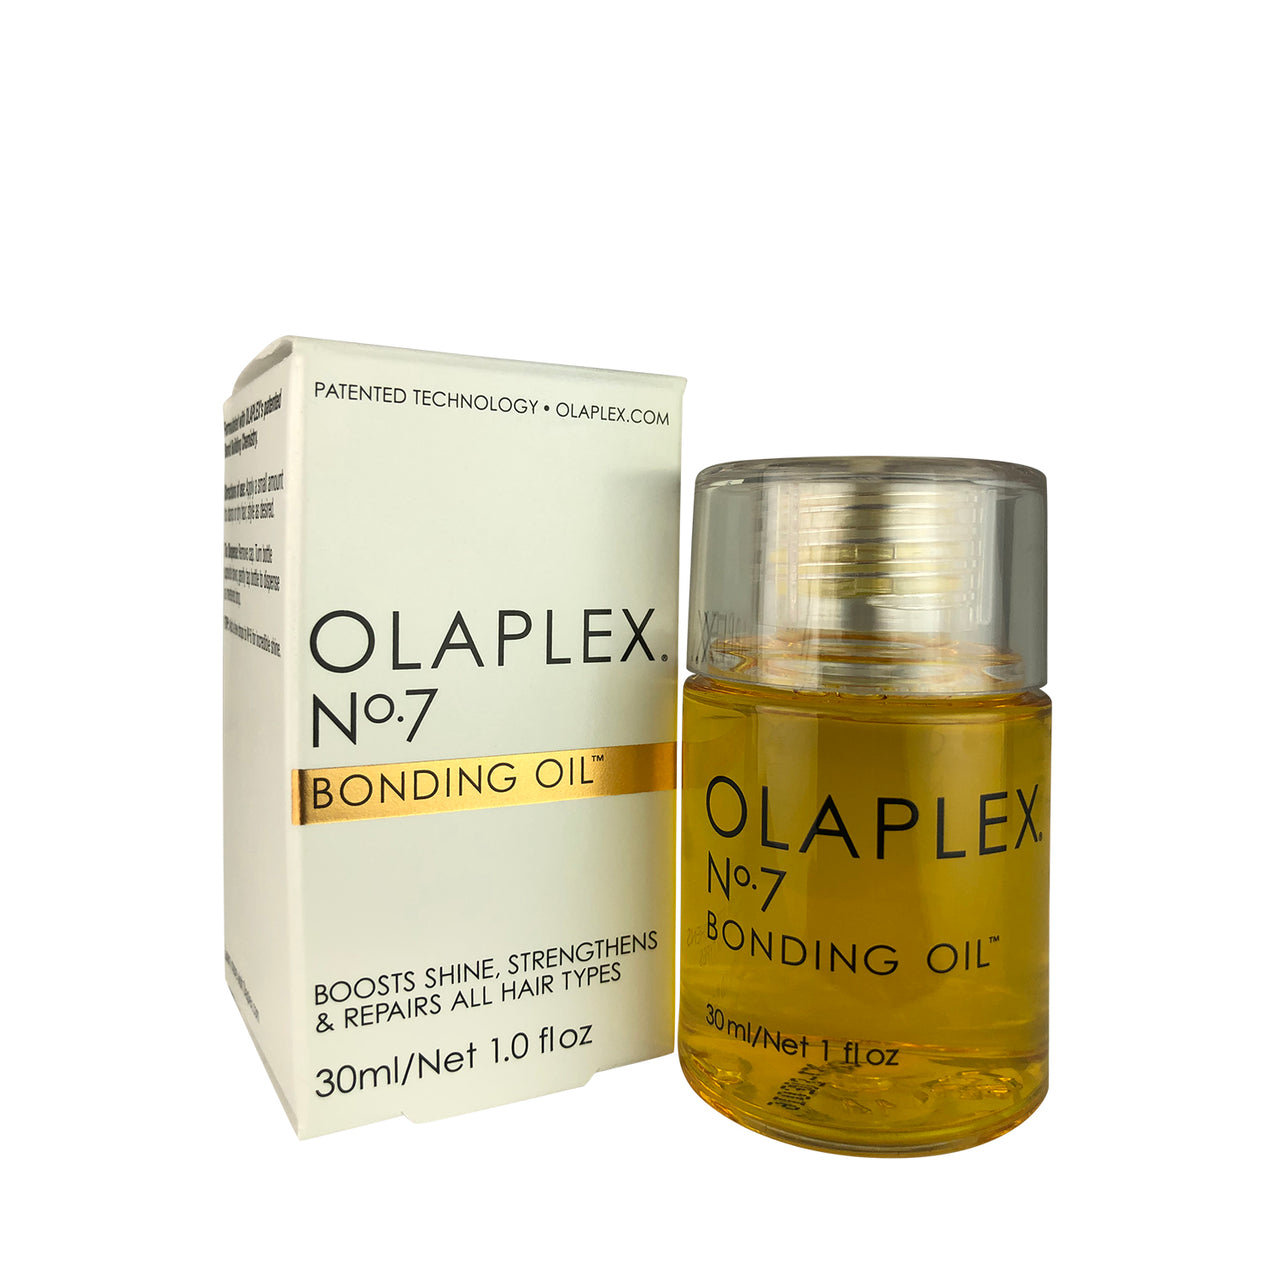 _OLAPLEX No. 7 Bonding Oil 1 oz Boosts Shines Strengthens & Repairs All Hair Types Vegan & Alcohol Free